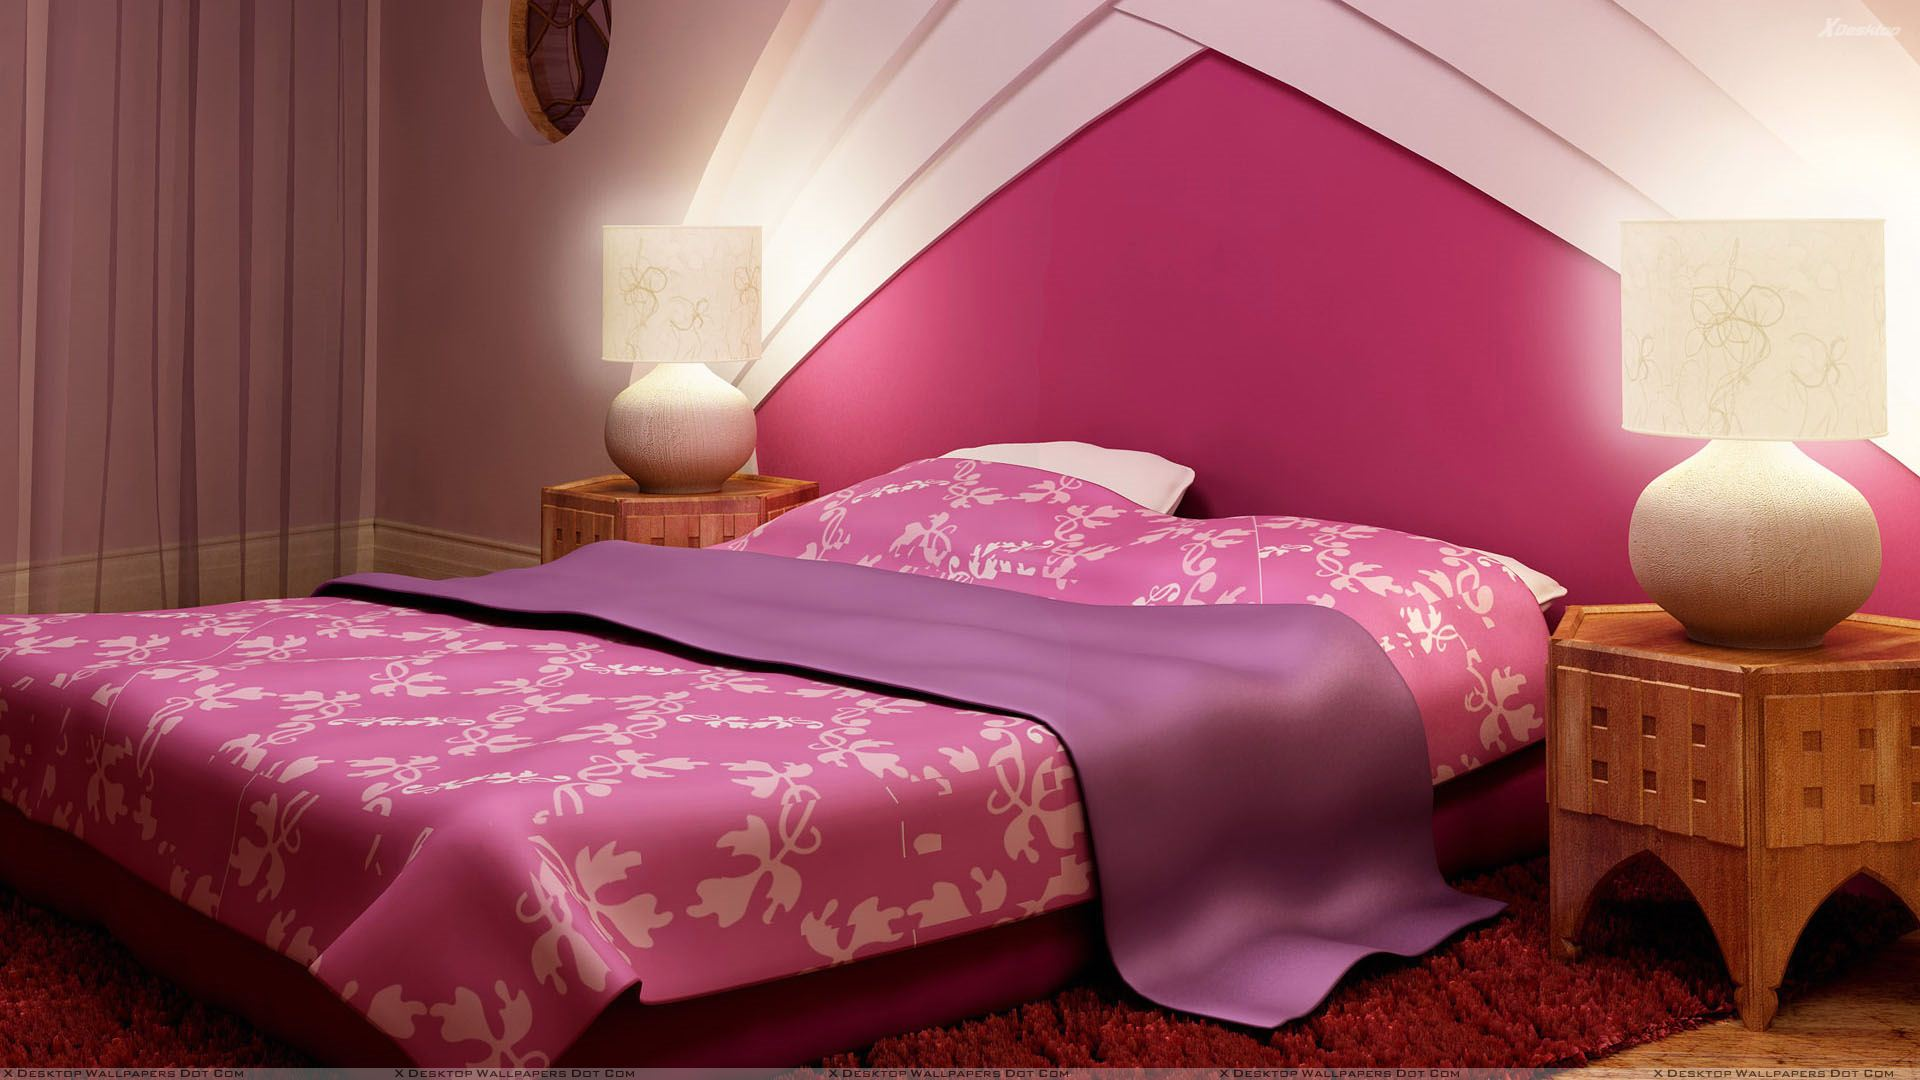 Pink background and pink bed in bedroom wallpaper for Bedroom ideas wallpaper